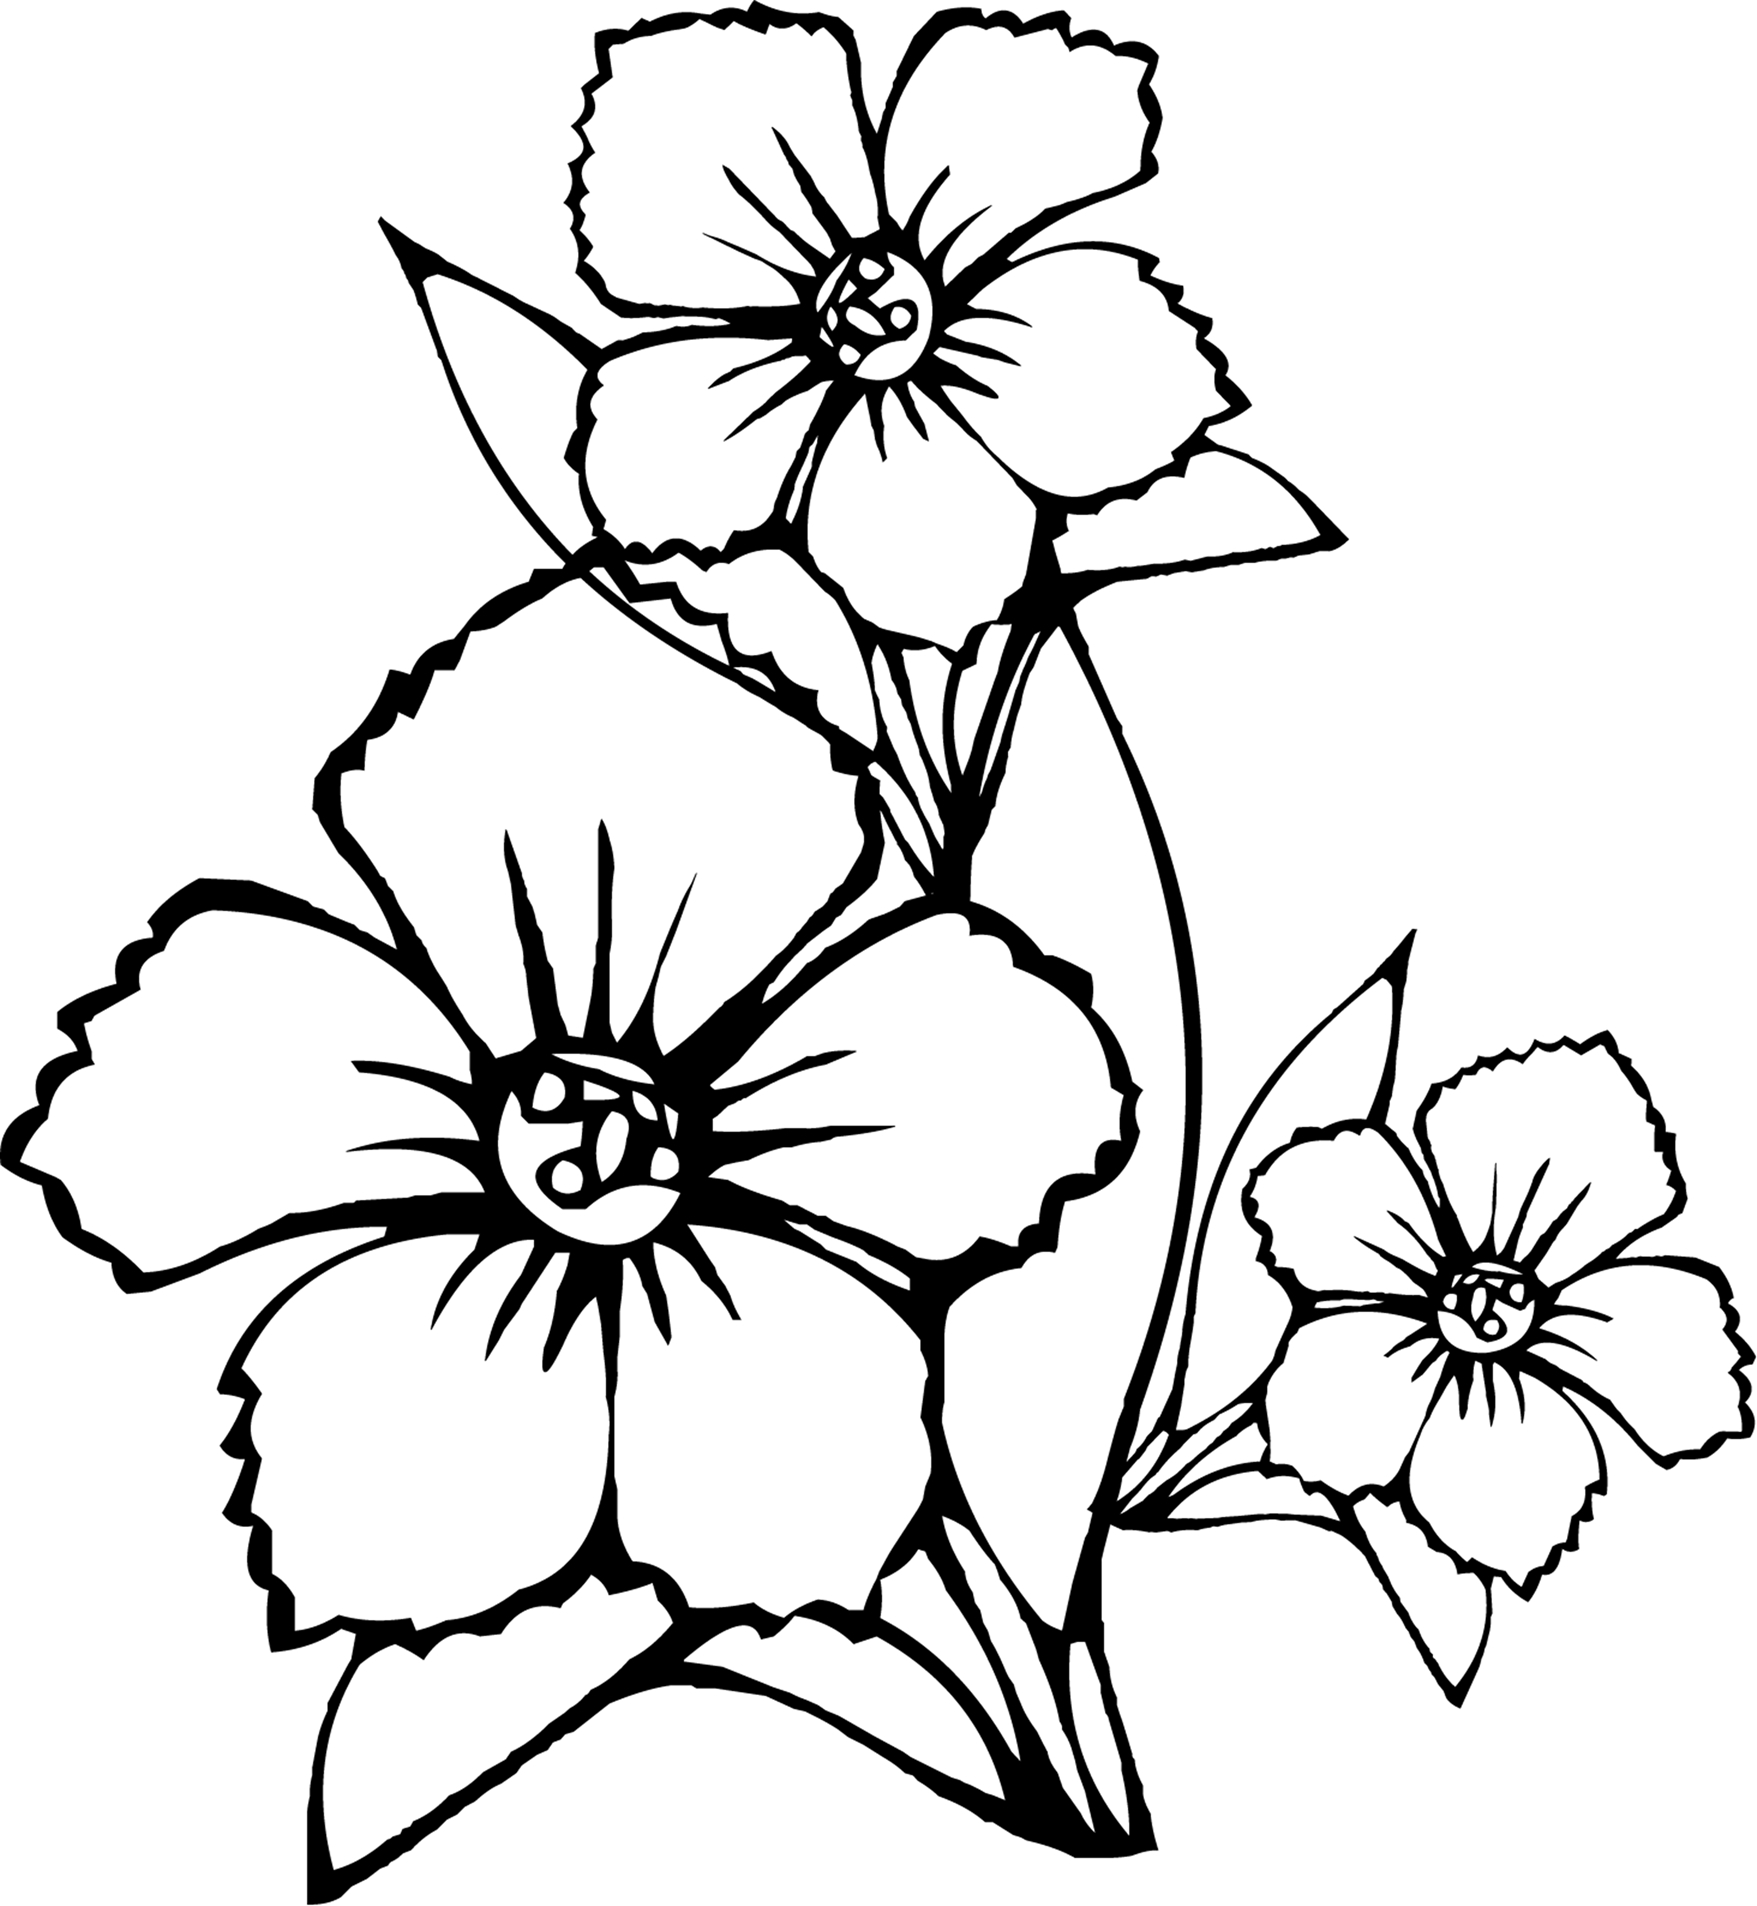 coloring pages about flowers flower coloring pages about pages coloring flowers